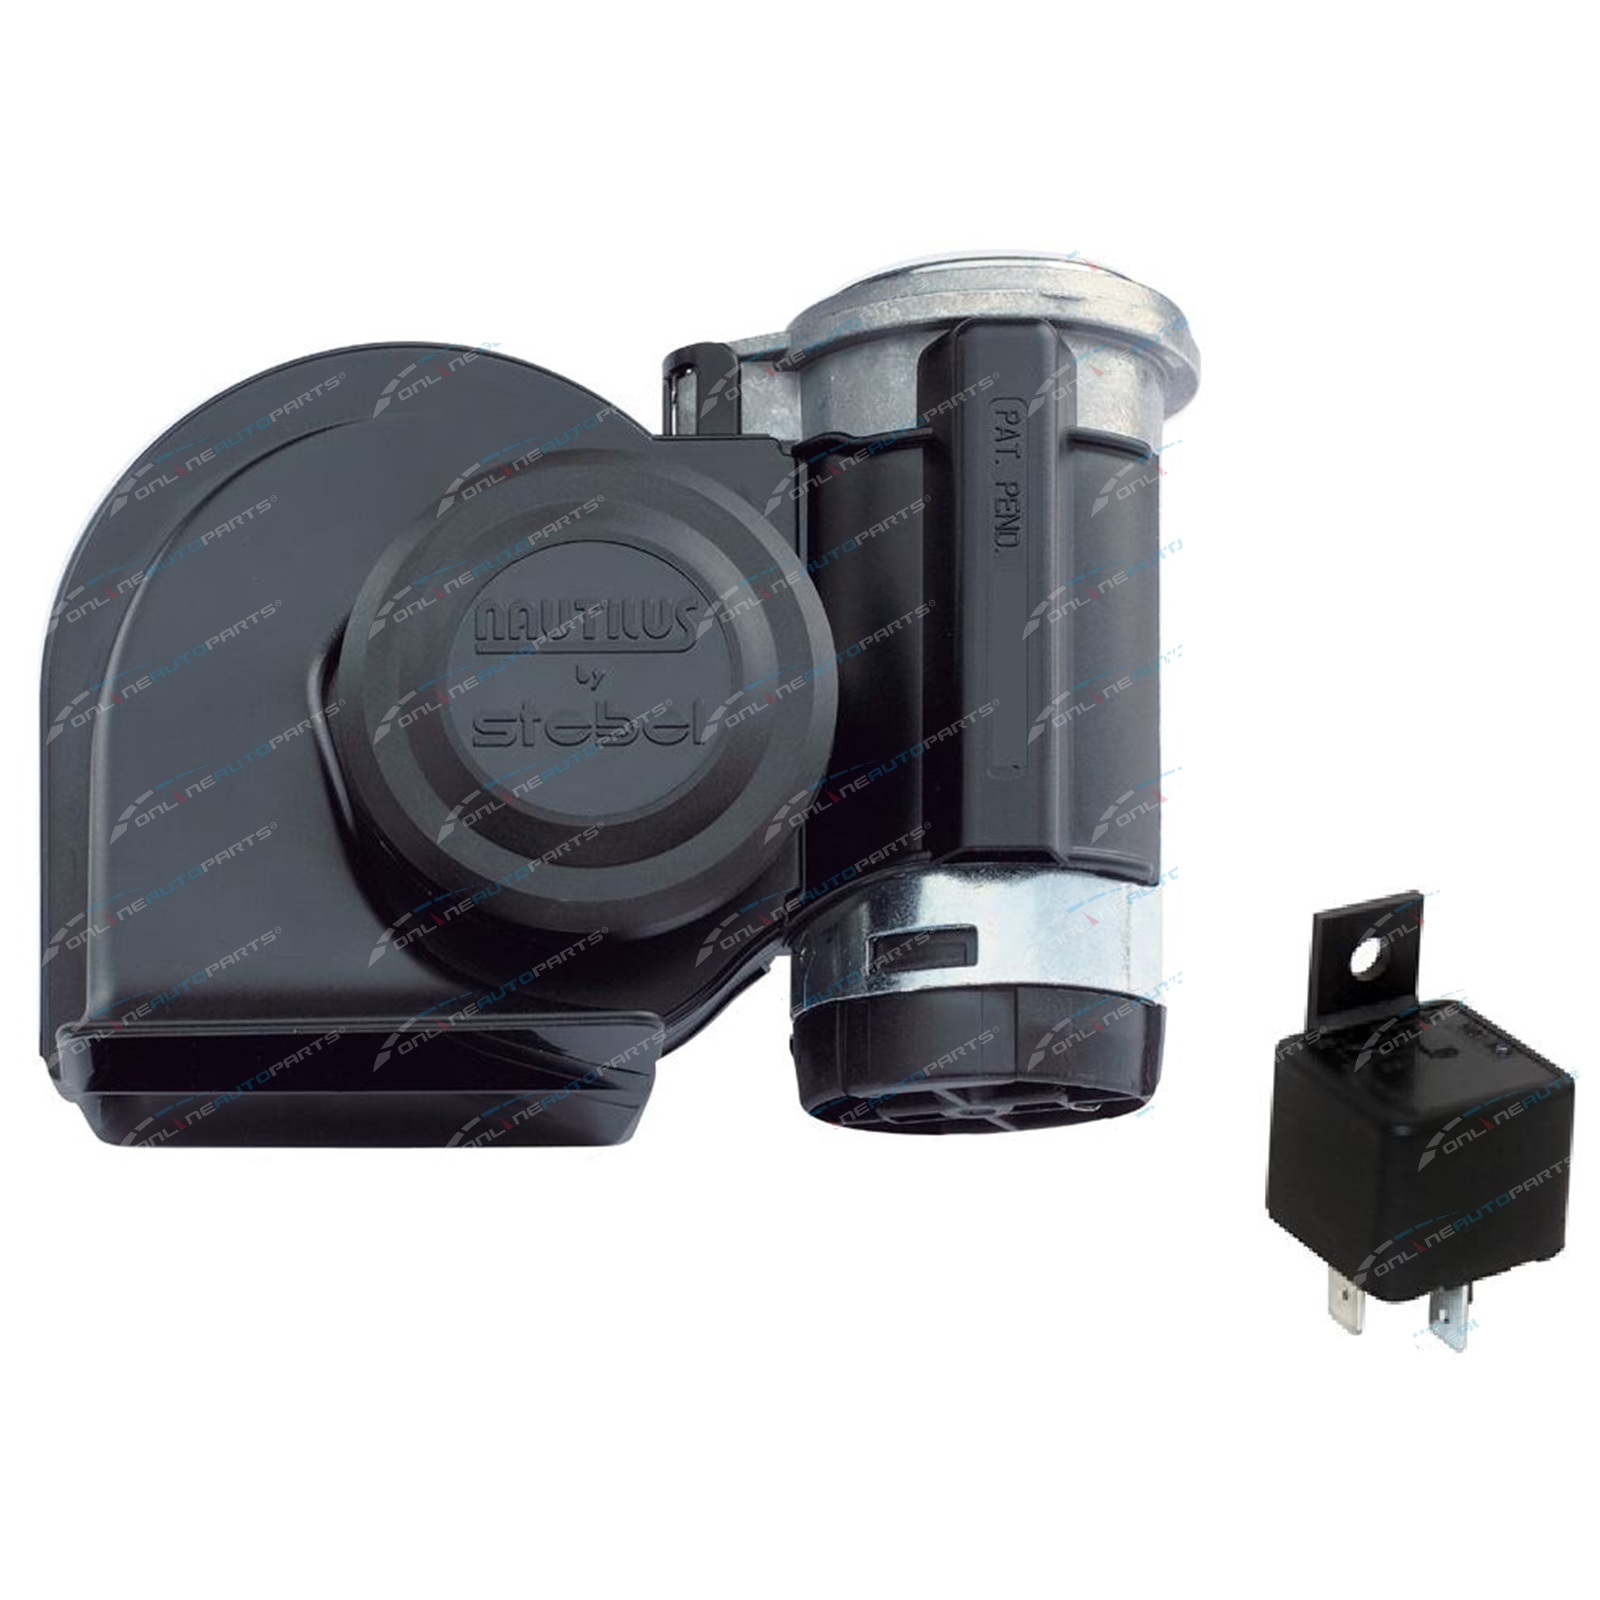 Stebel Nautilus Truck Air Horn Black 24 Volt 139dB Loud New with Relay + 24v Compressor